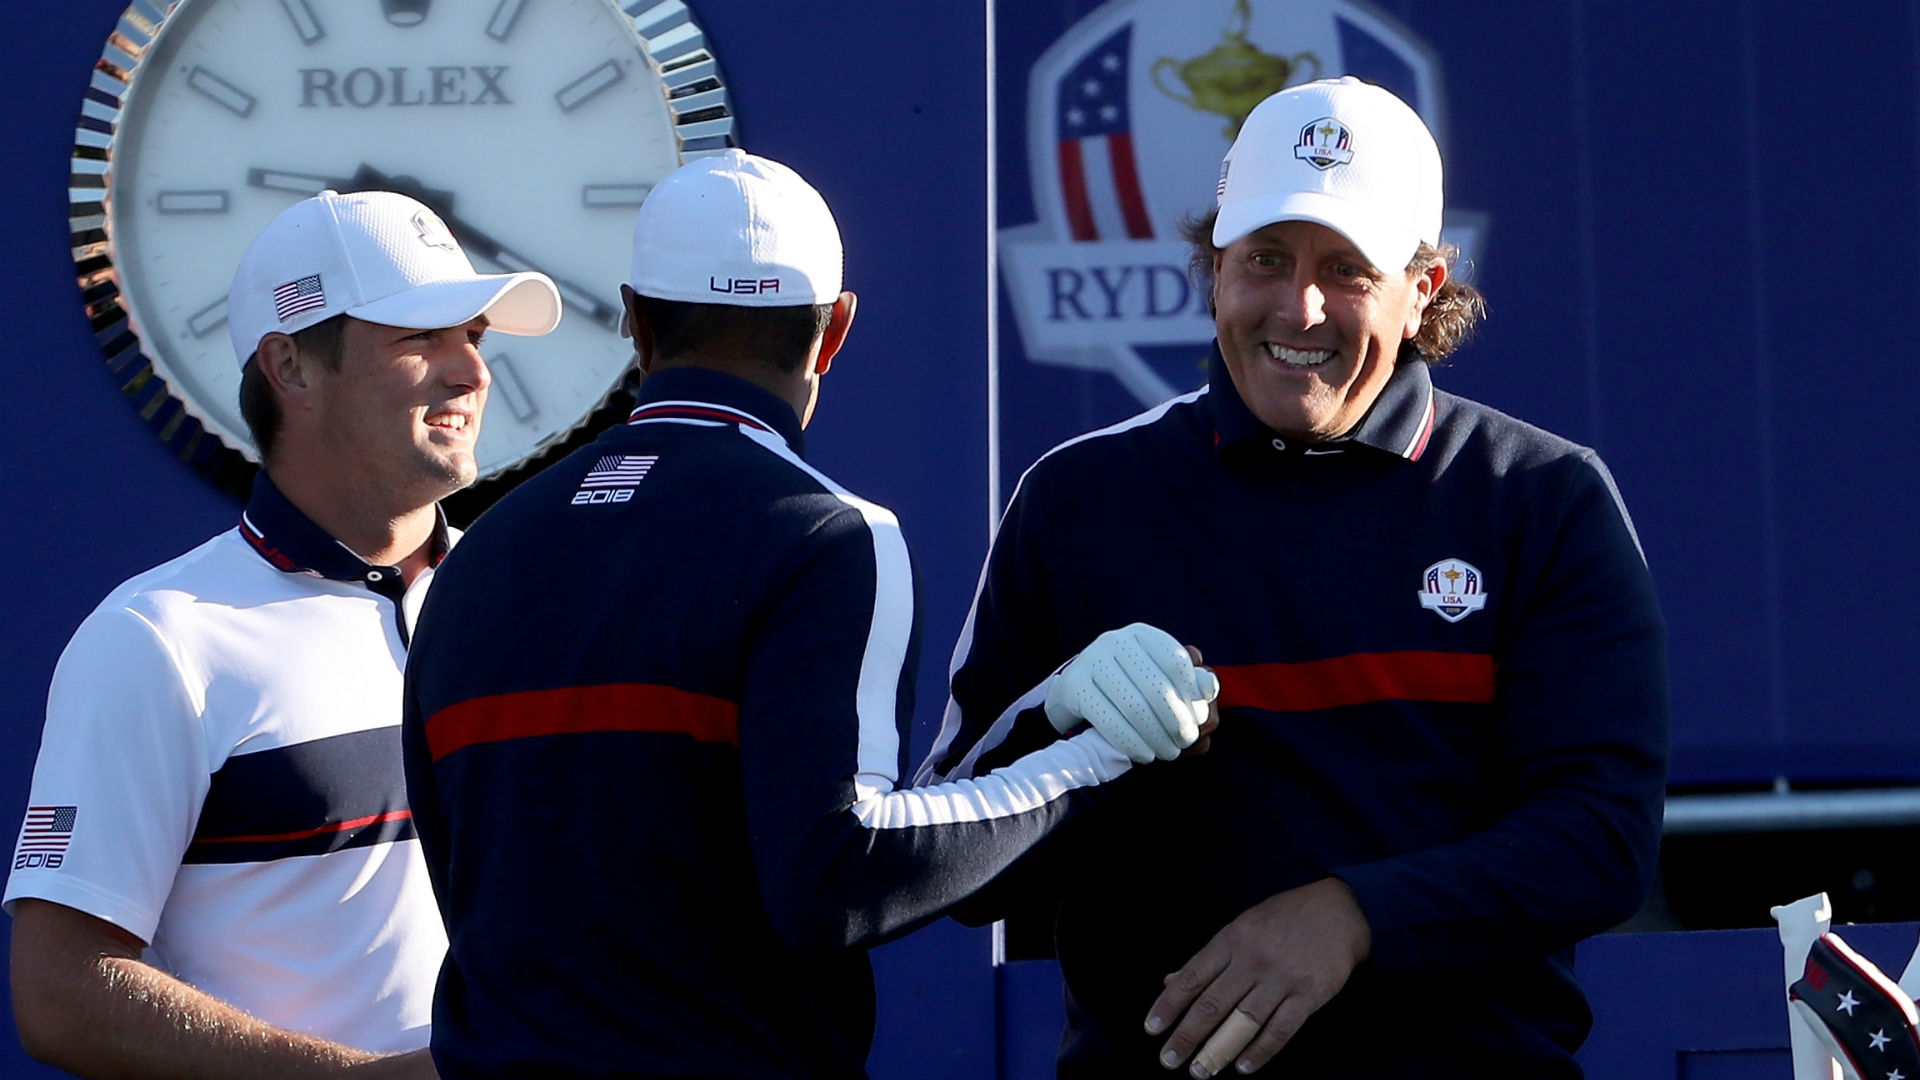 American stars seek European success in the Ryder Cup | Columbus Ledger-Enquirer